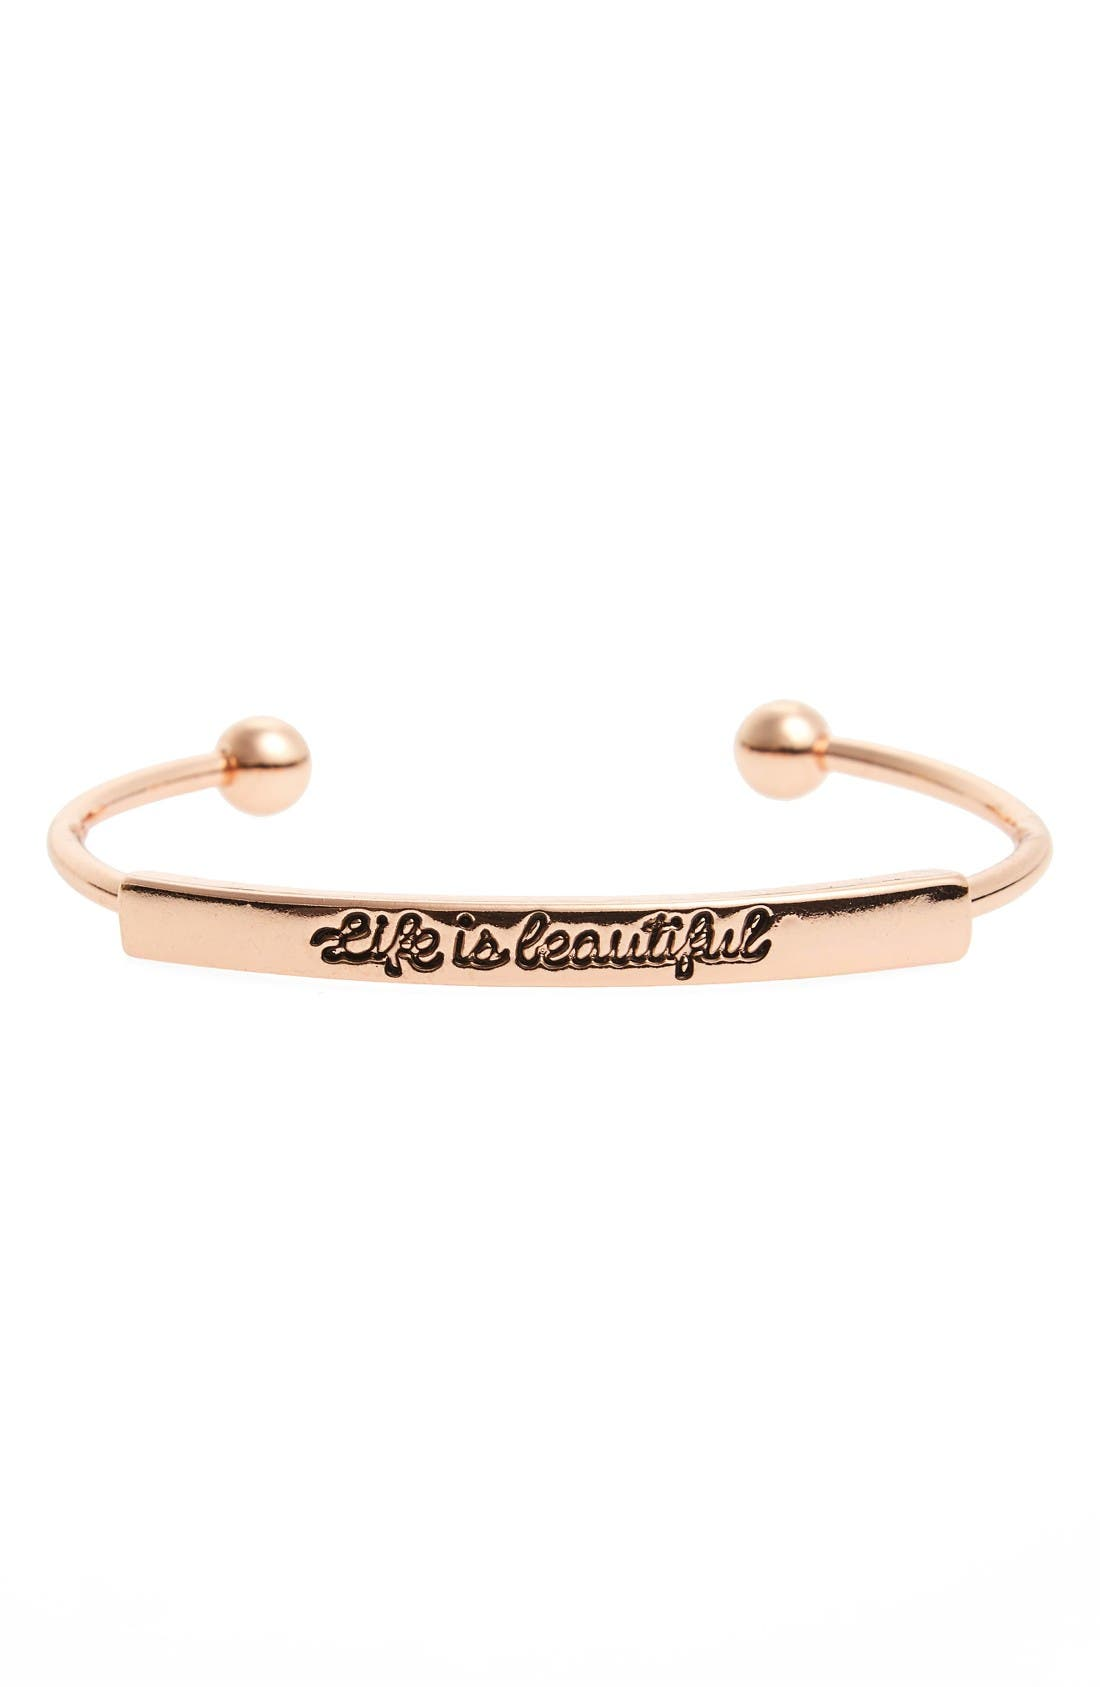 Alternate Image 1 Selected - Topshop Life is Beautiful Cuff